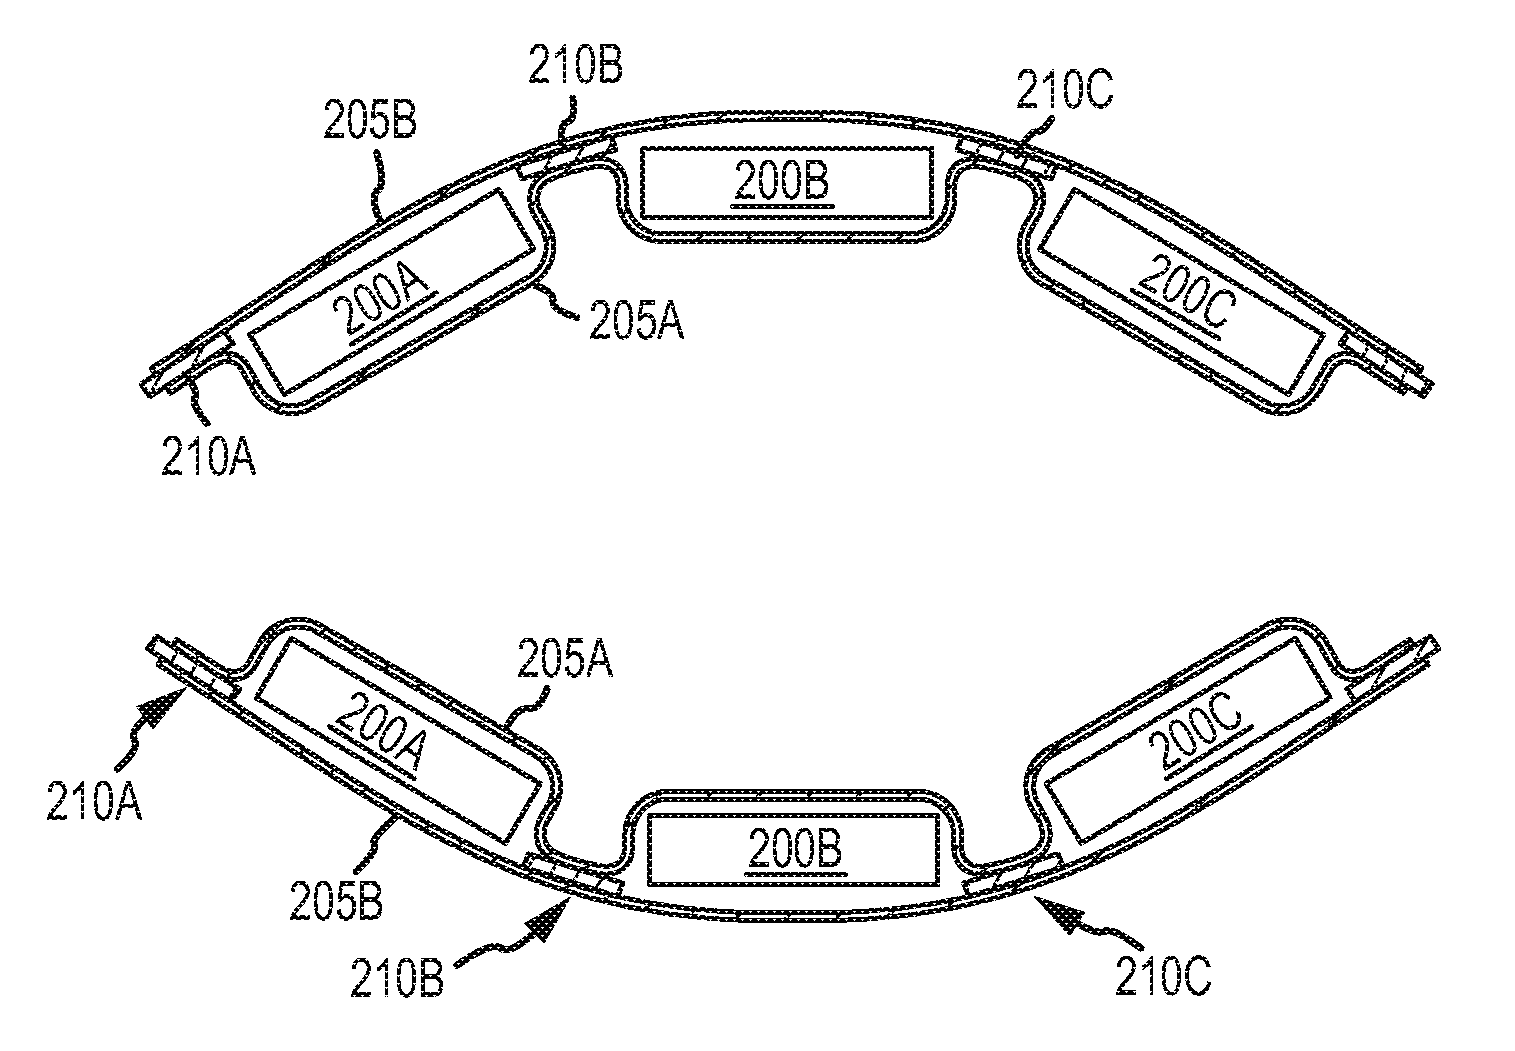 Apple invents flexible batteries, likely for iWatch